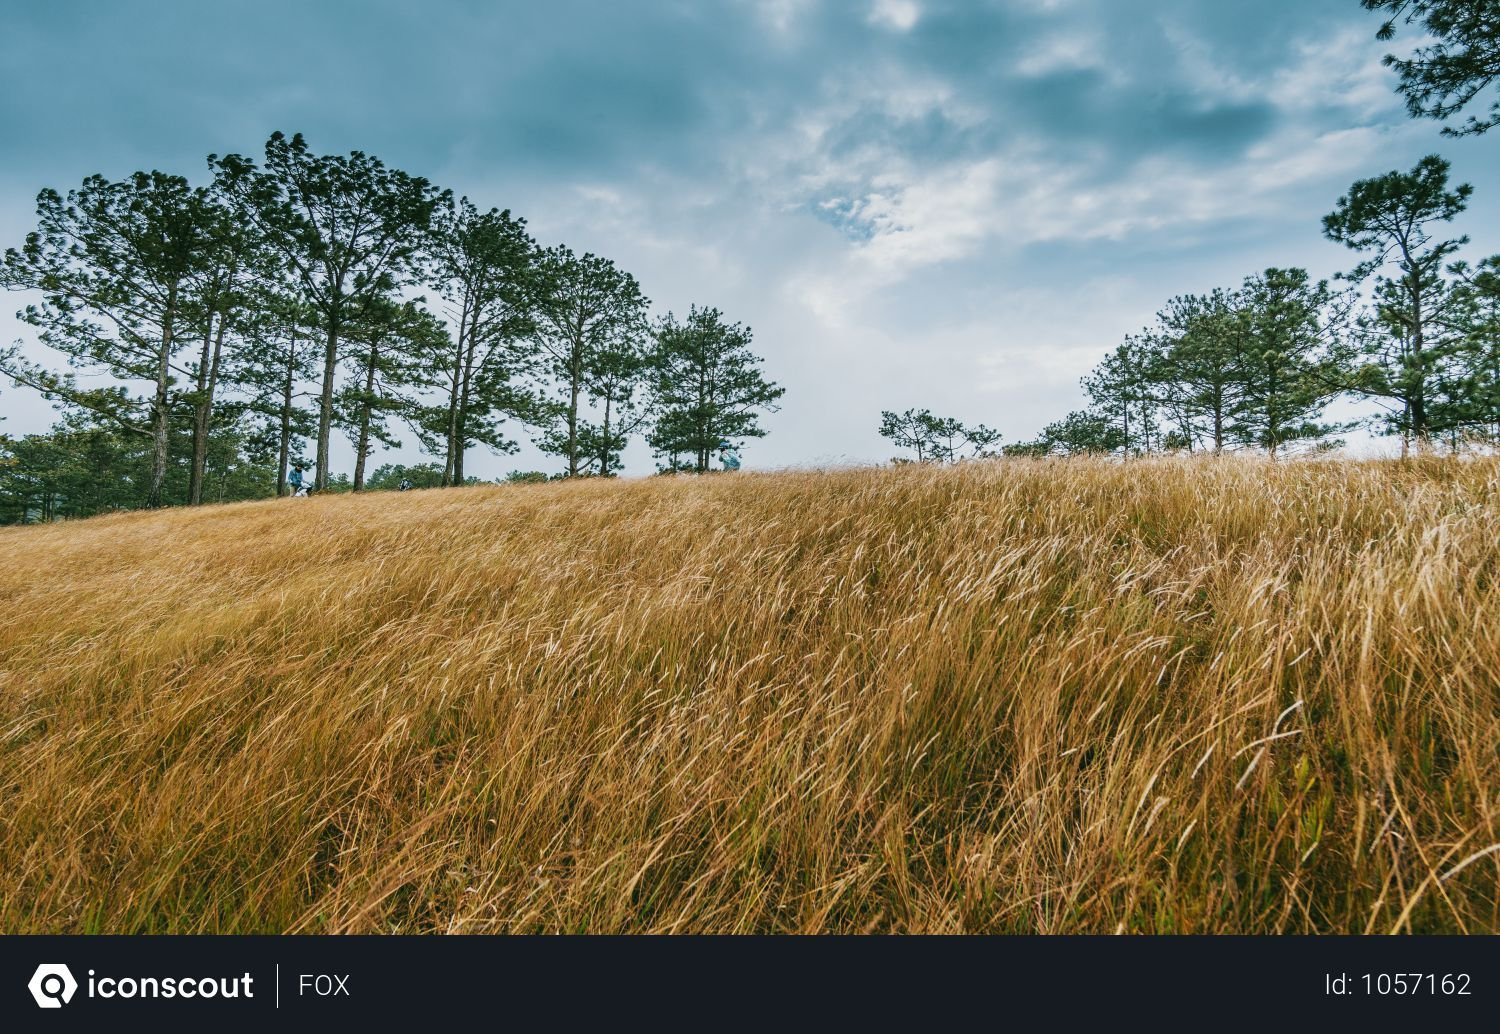 Free Wide Brown Grass Field Surrounded By Trees Photo Download In Png Jpg Format Landscape Grass Field Photography Guide